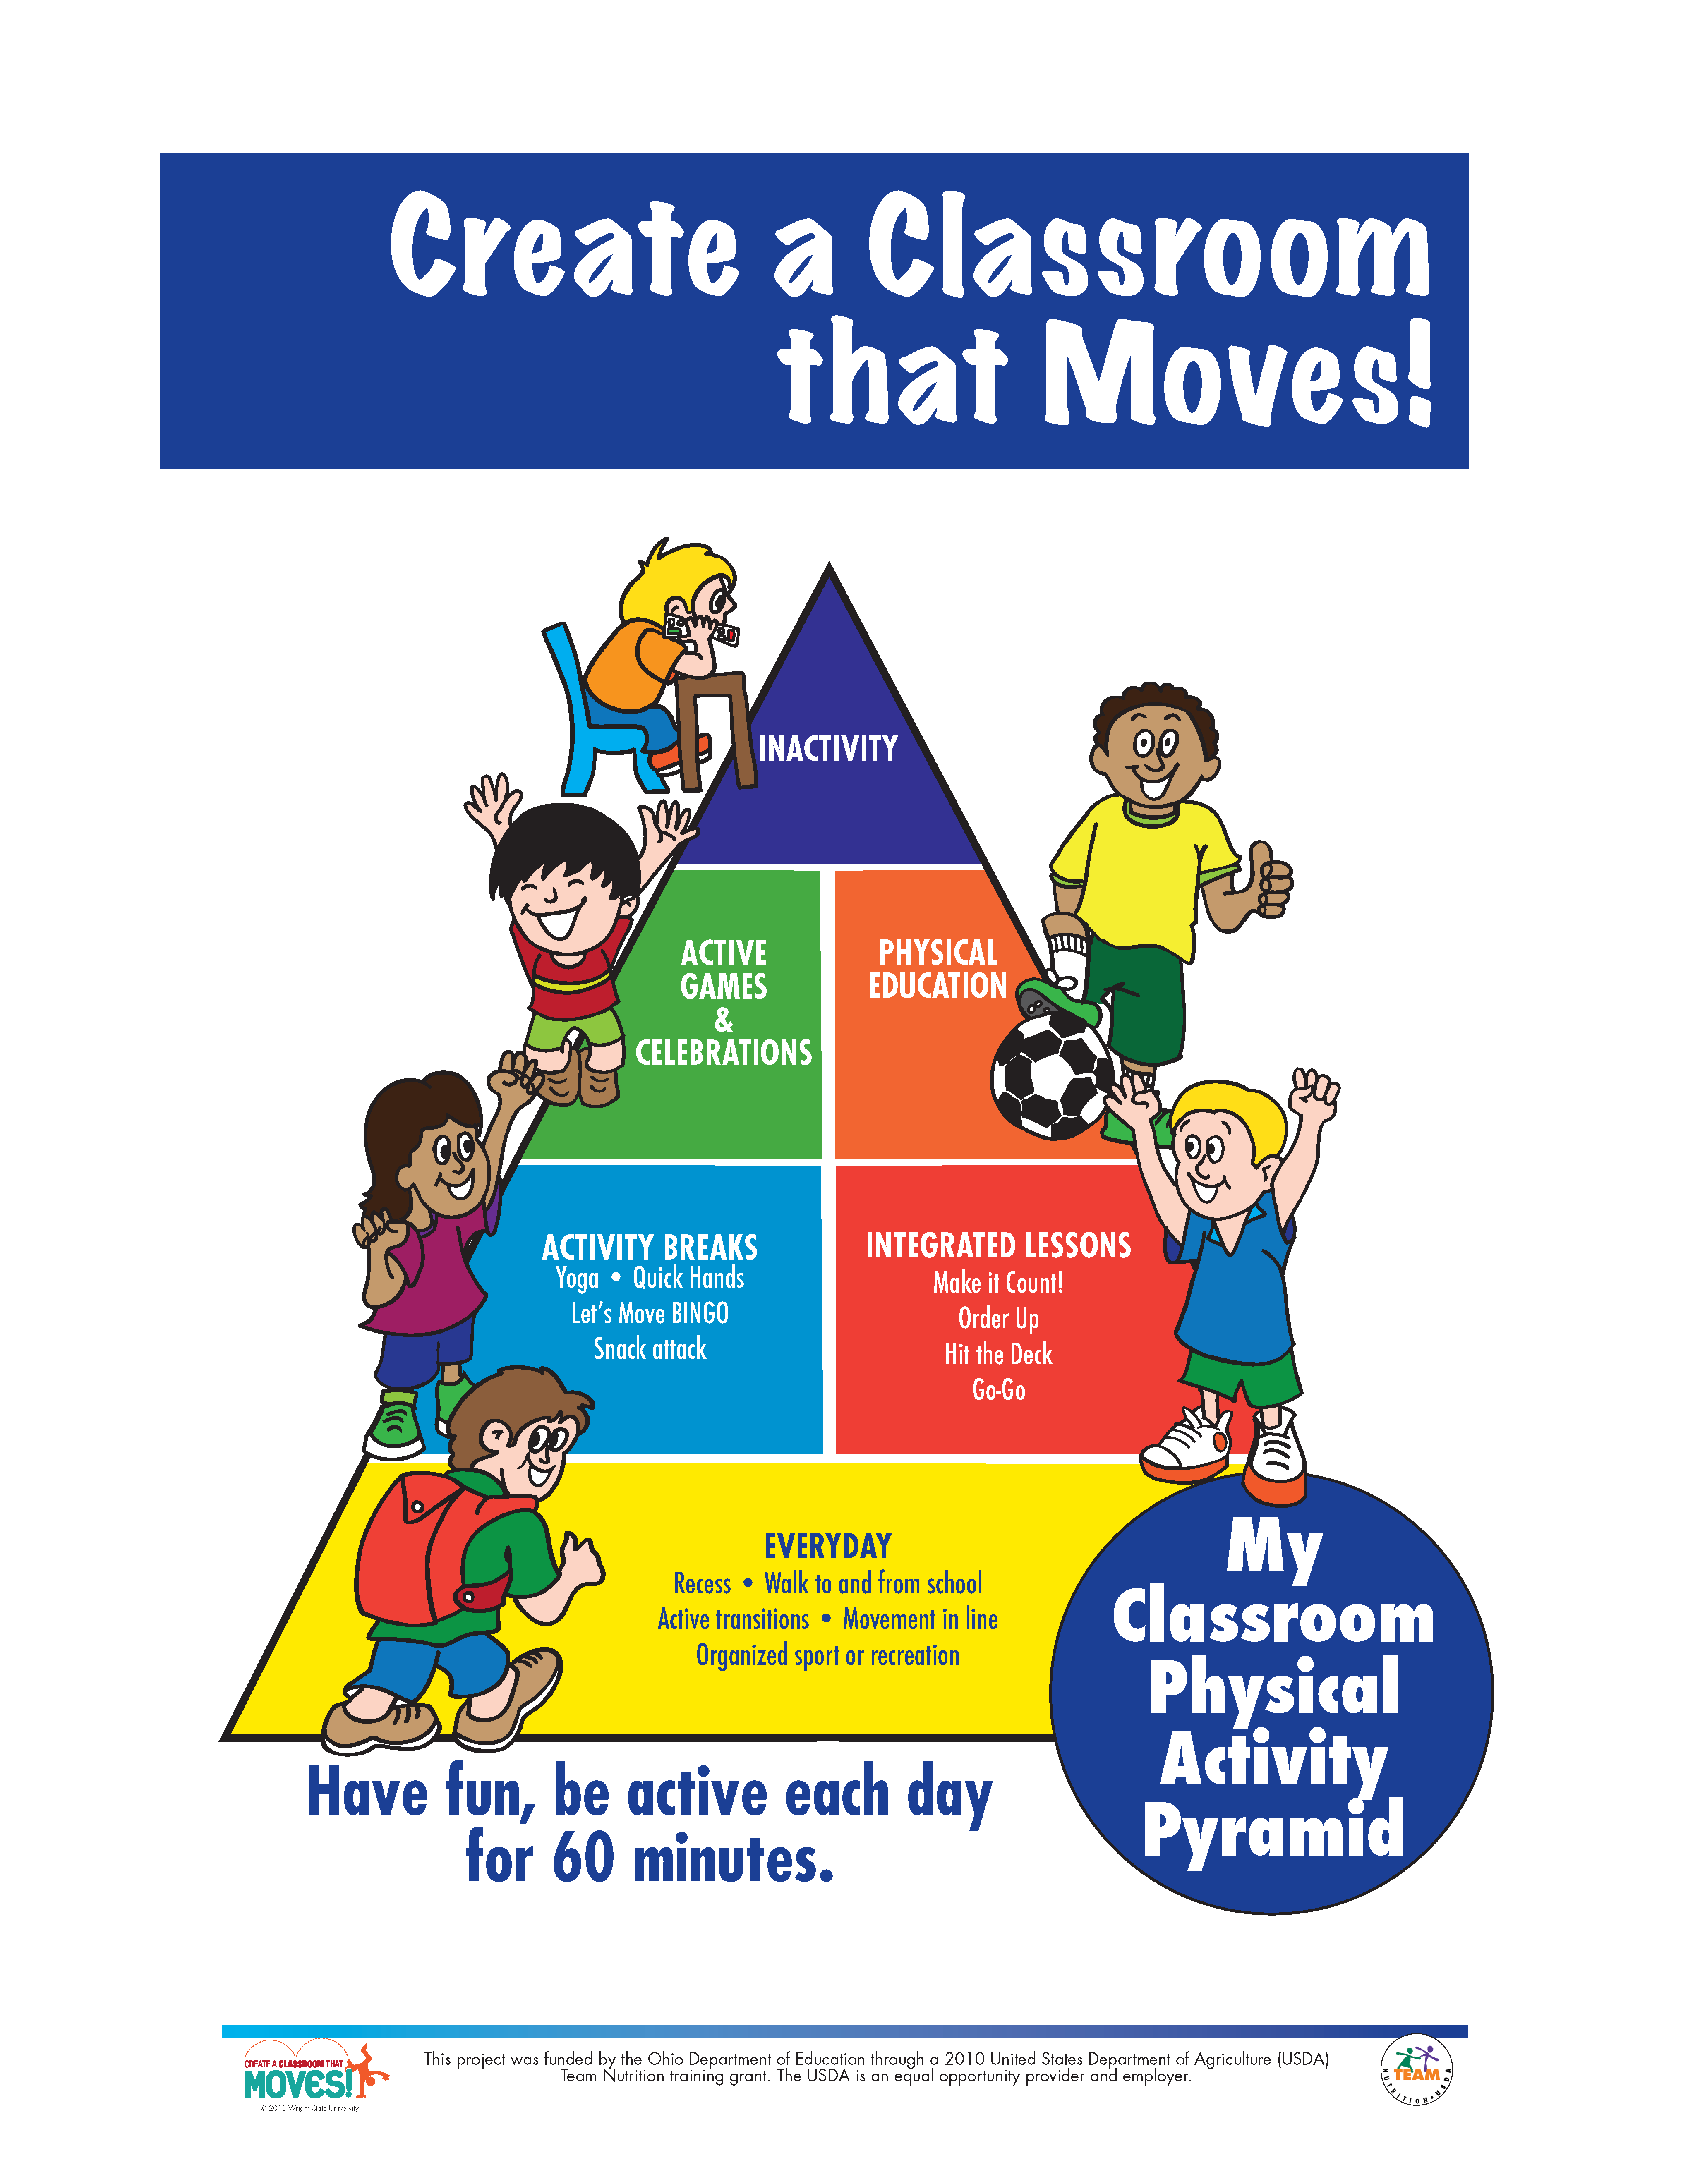 Activity Pyramid For Movement In The Classroom